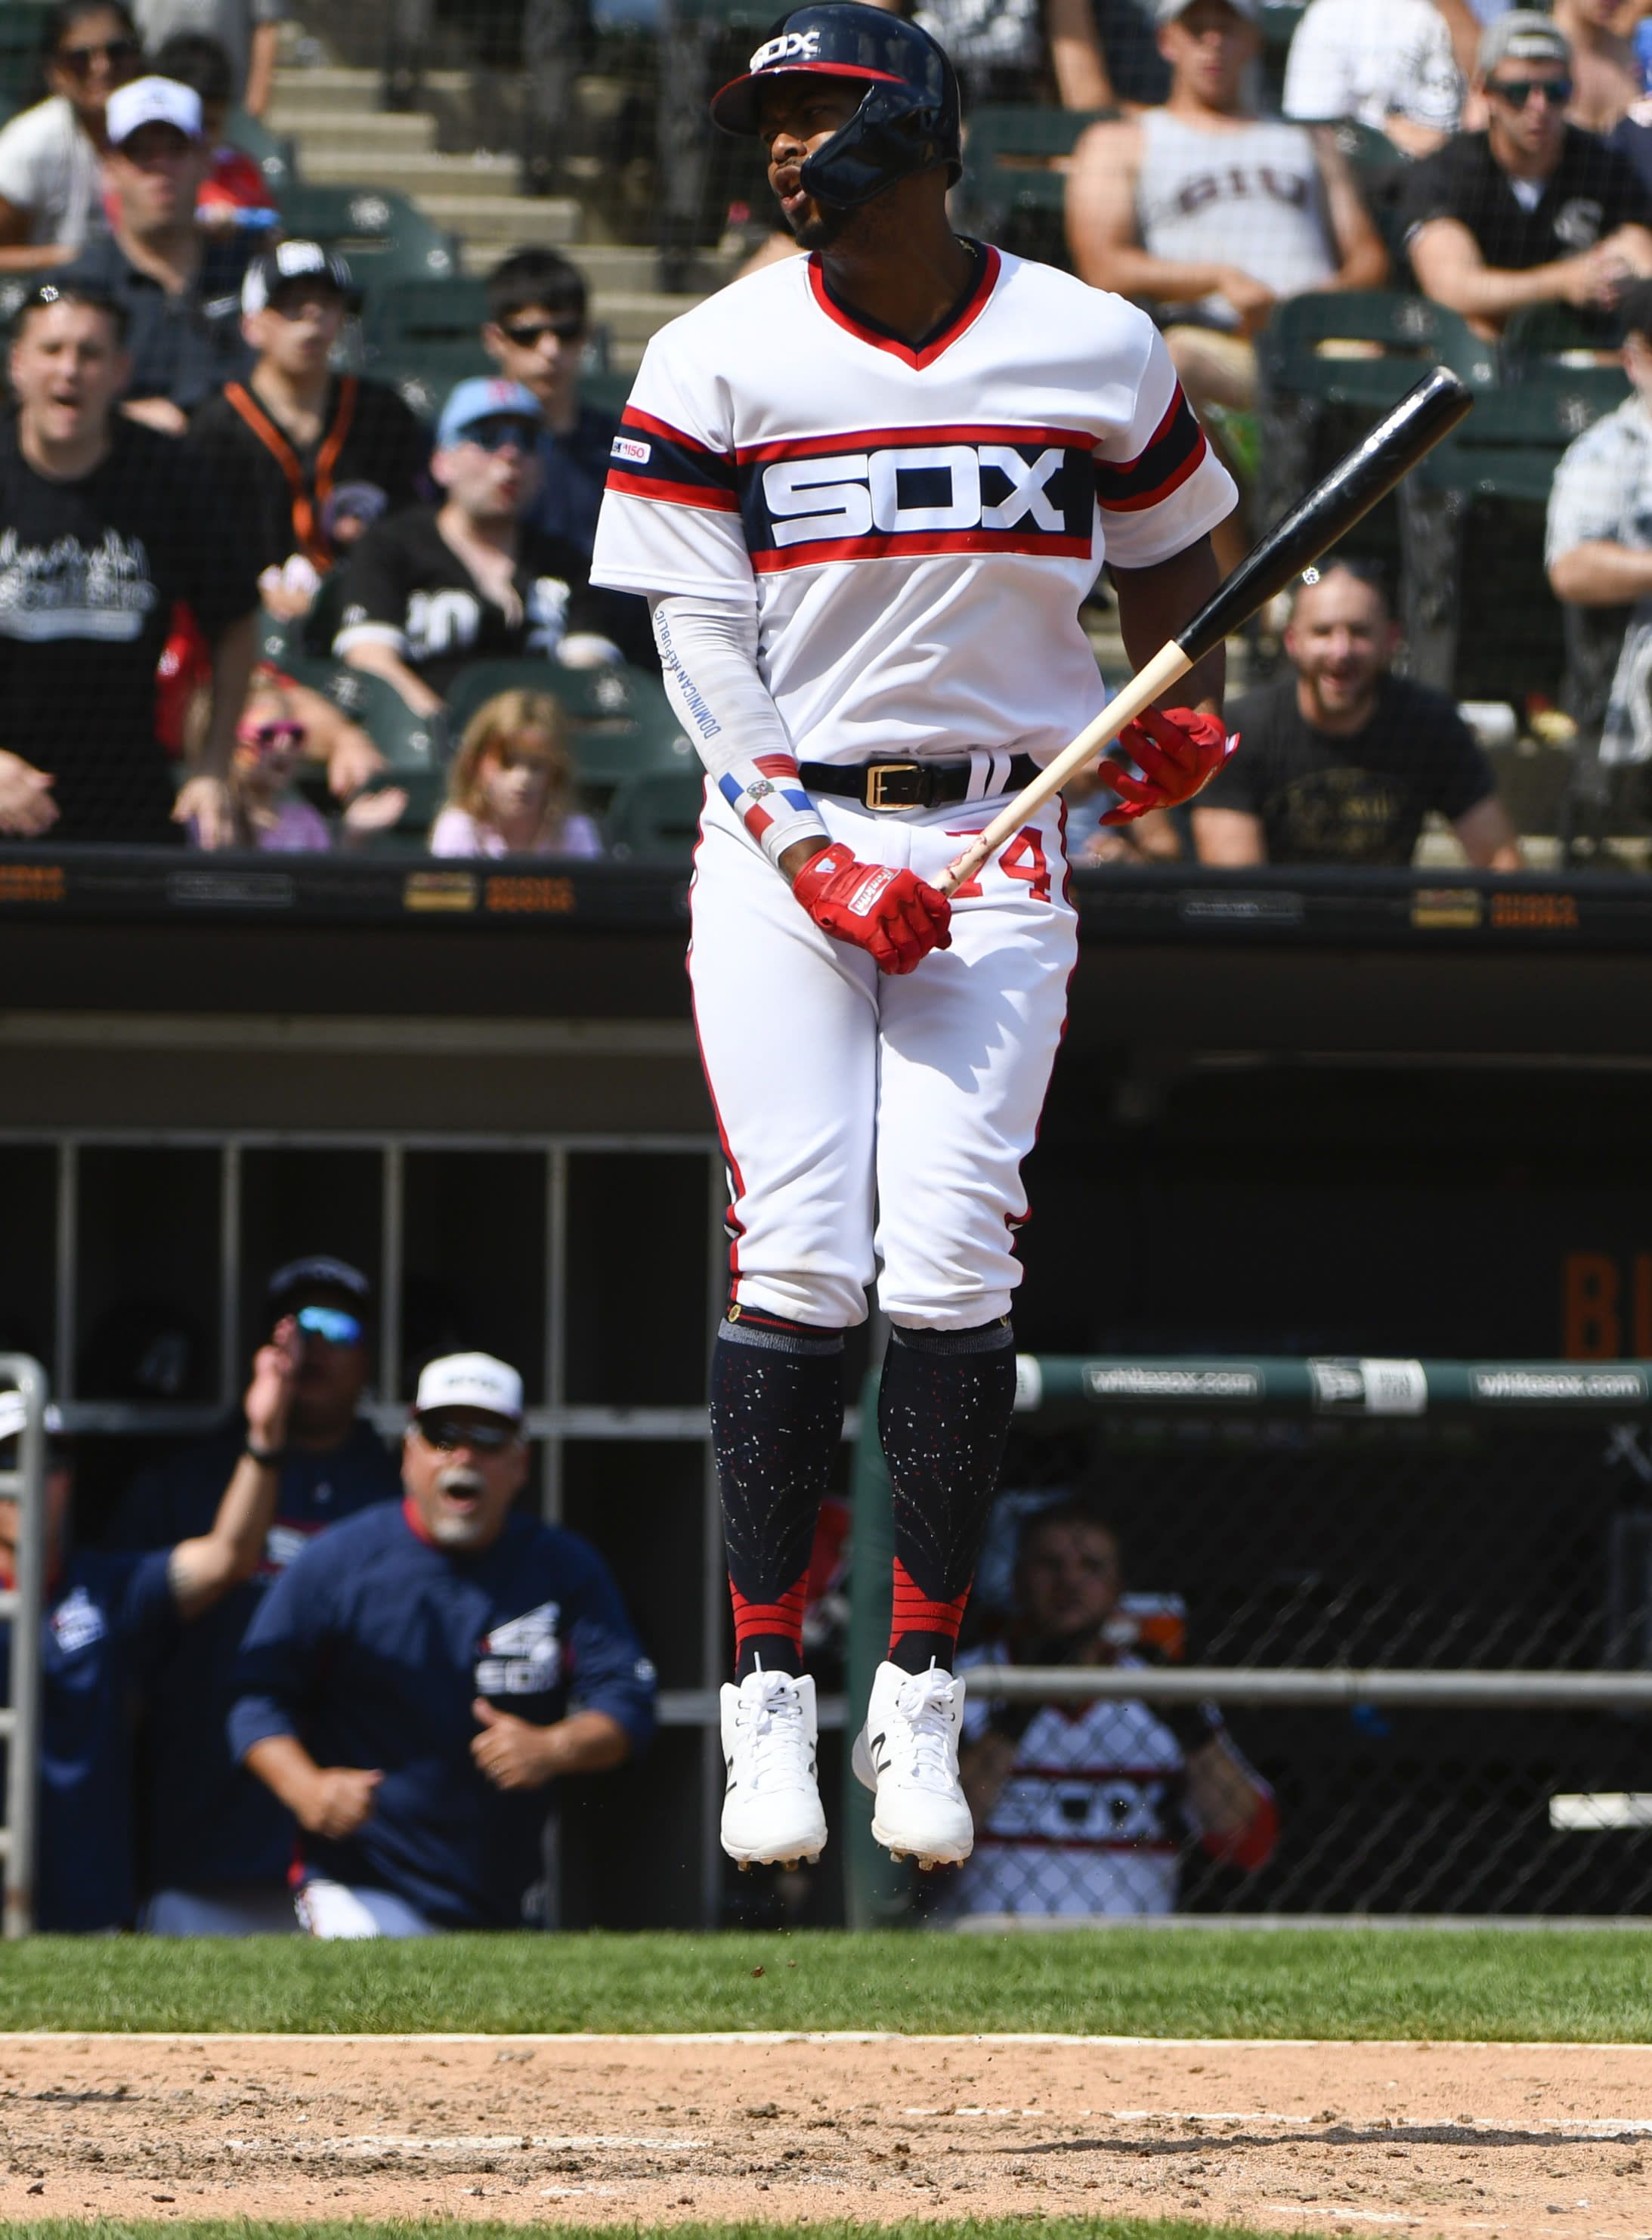 Chicago White Sox's Eloy Jimenez reacts after being called out on strikes during the sixth inning of a baseball game against the Minnesota Twins, Sunday, July 28, 2019, in Chicago. (AP Photo/Matt Marton)